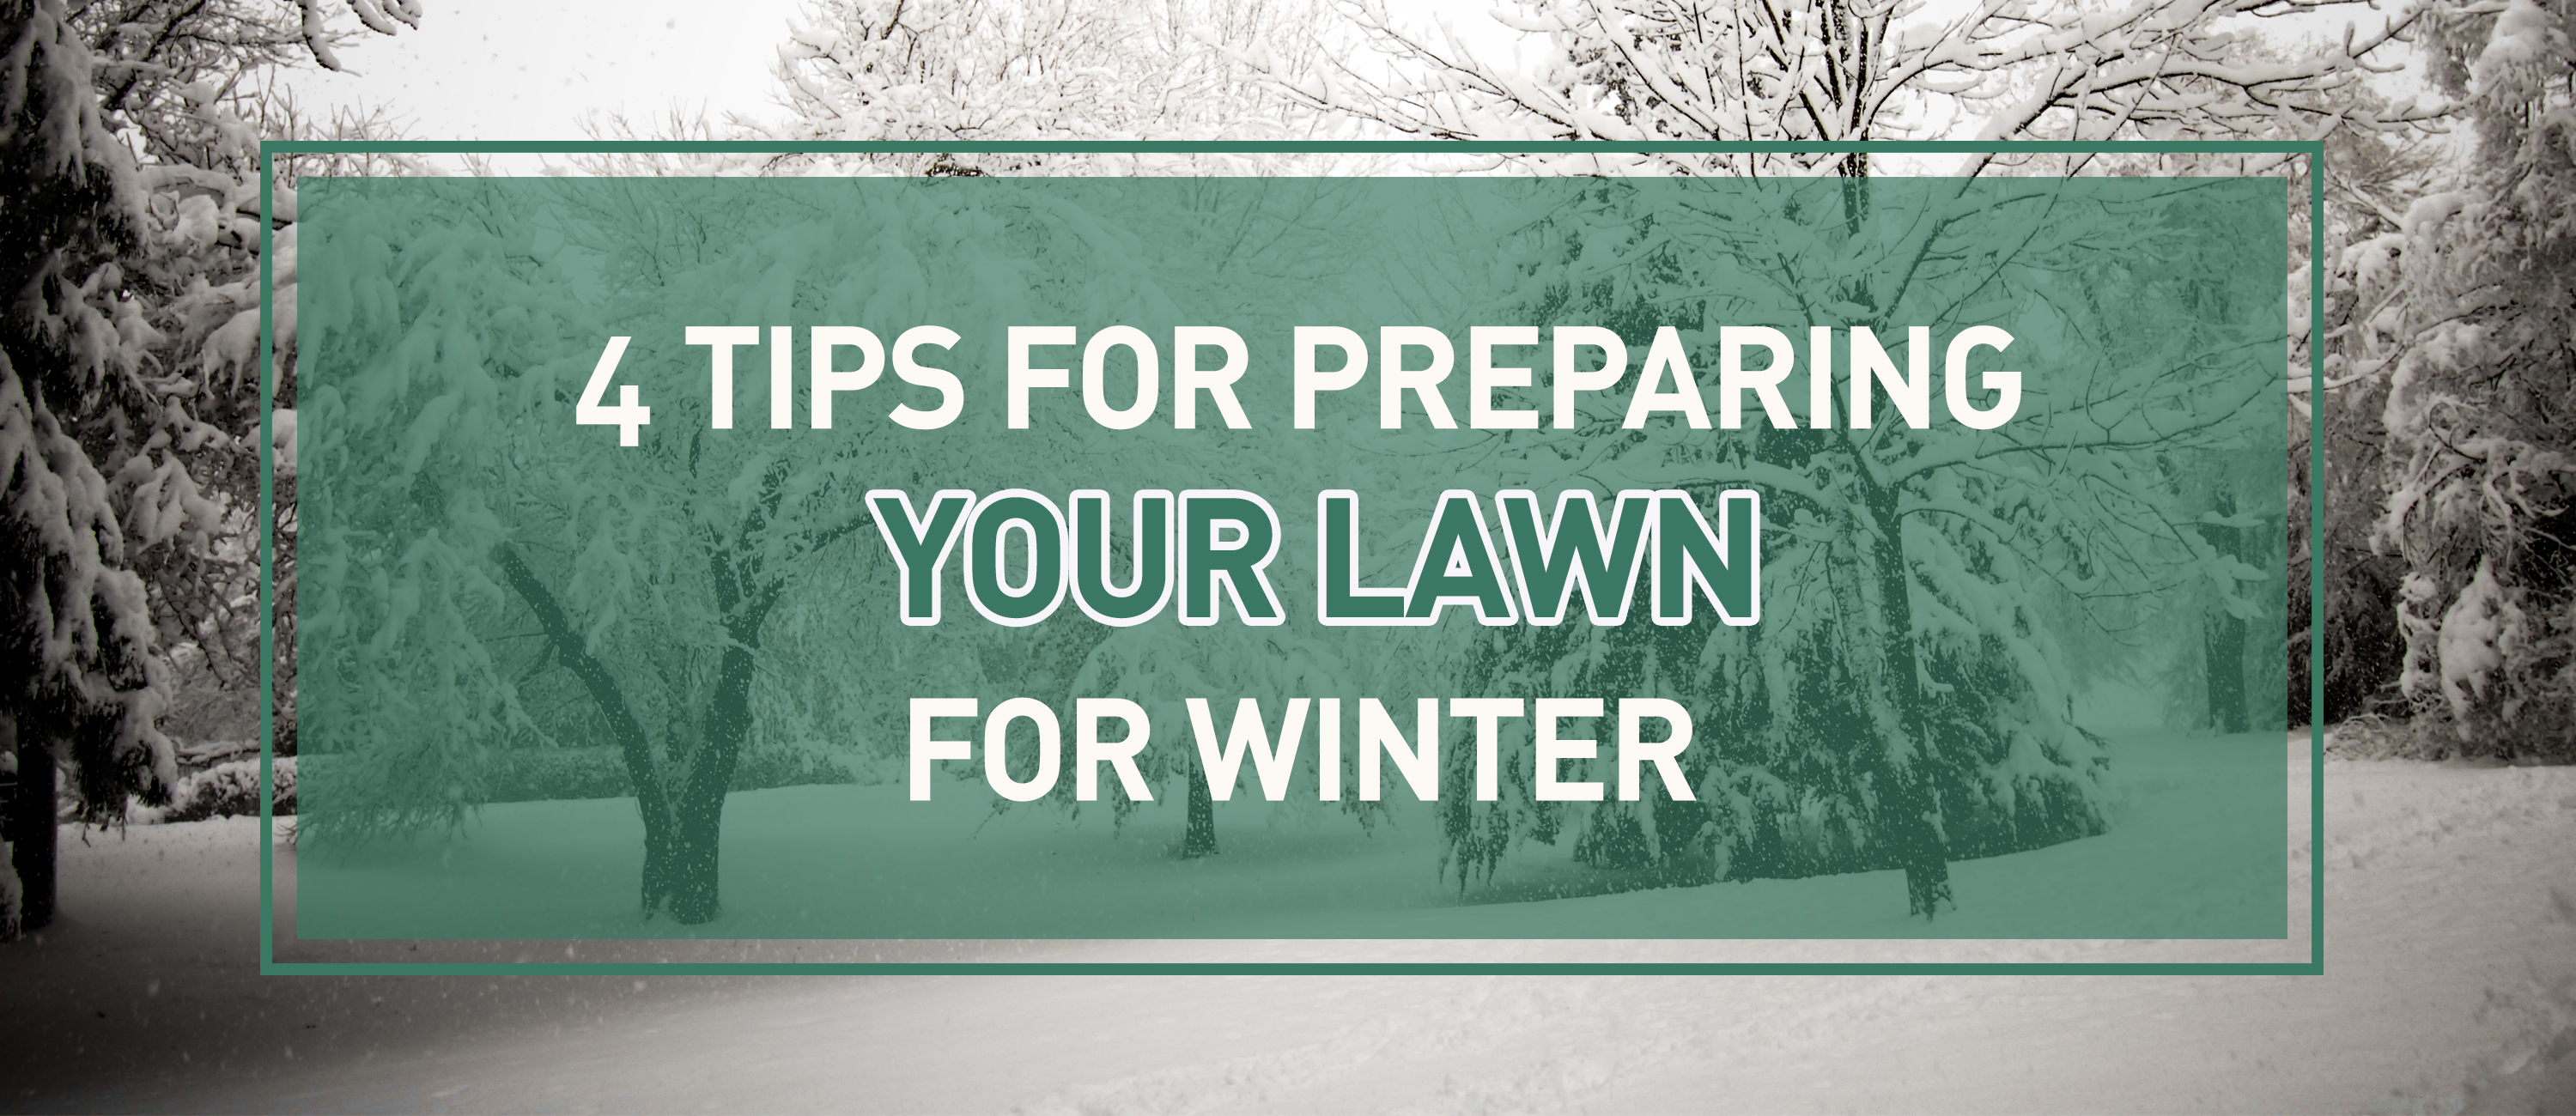 Prepare Lawn For Winter 4 tips for preparing your lawn for winter - clean energy